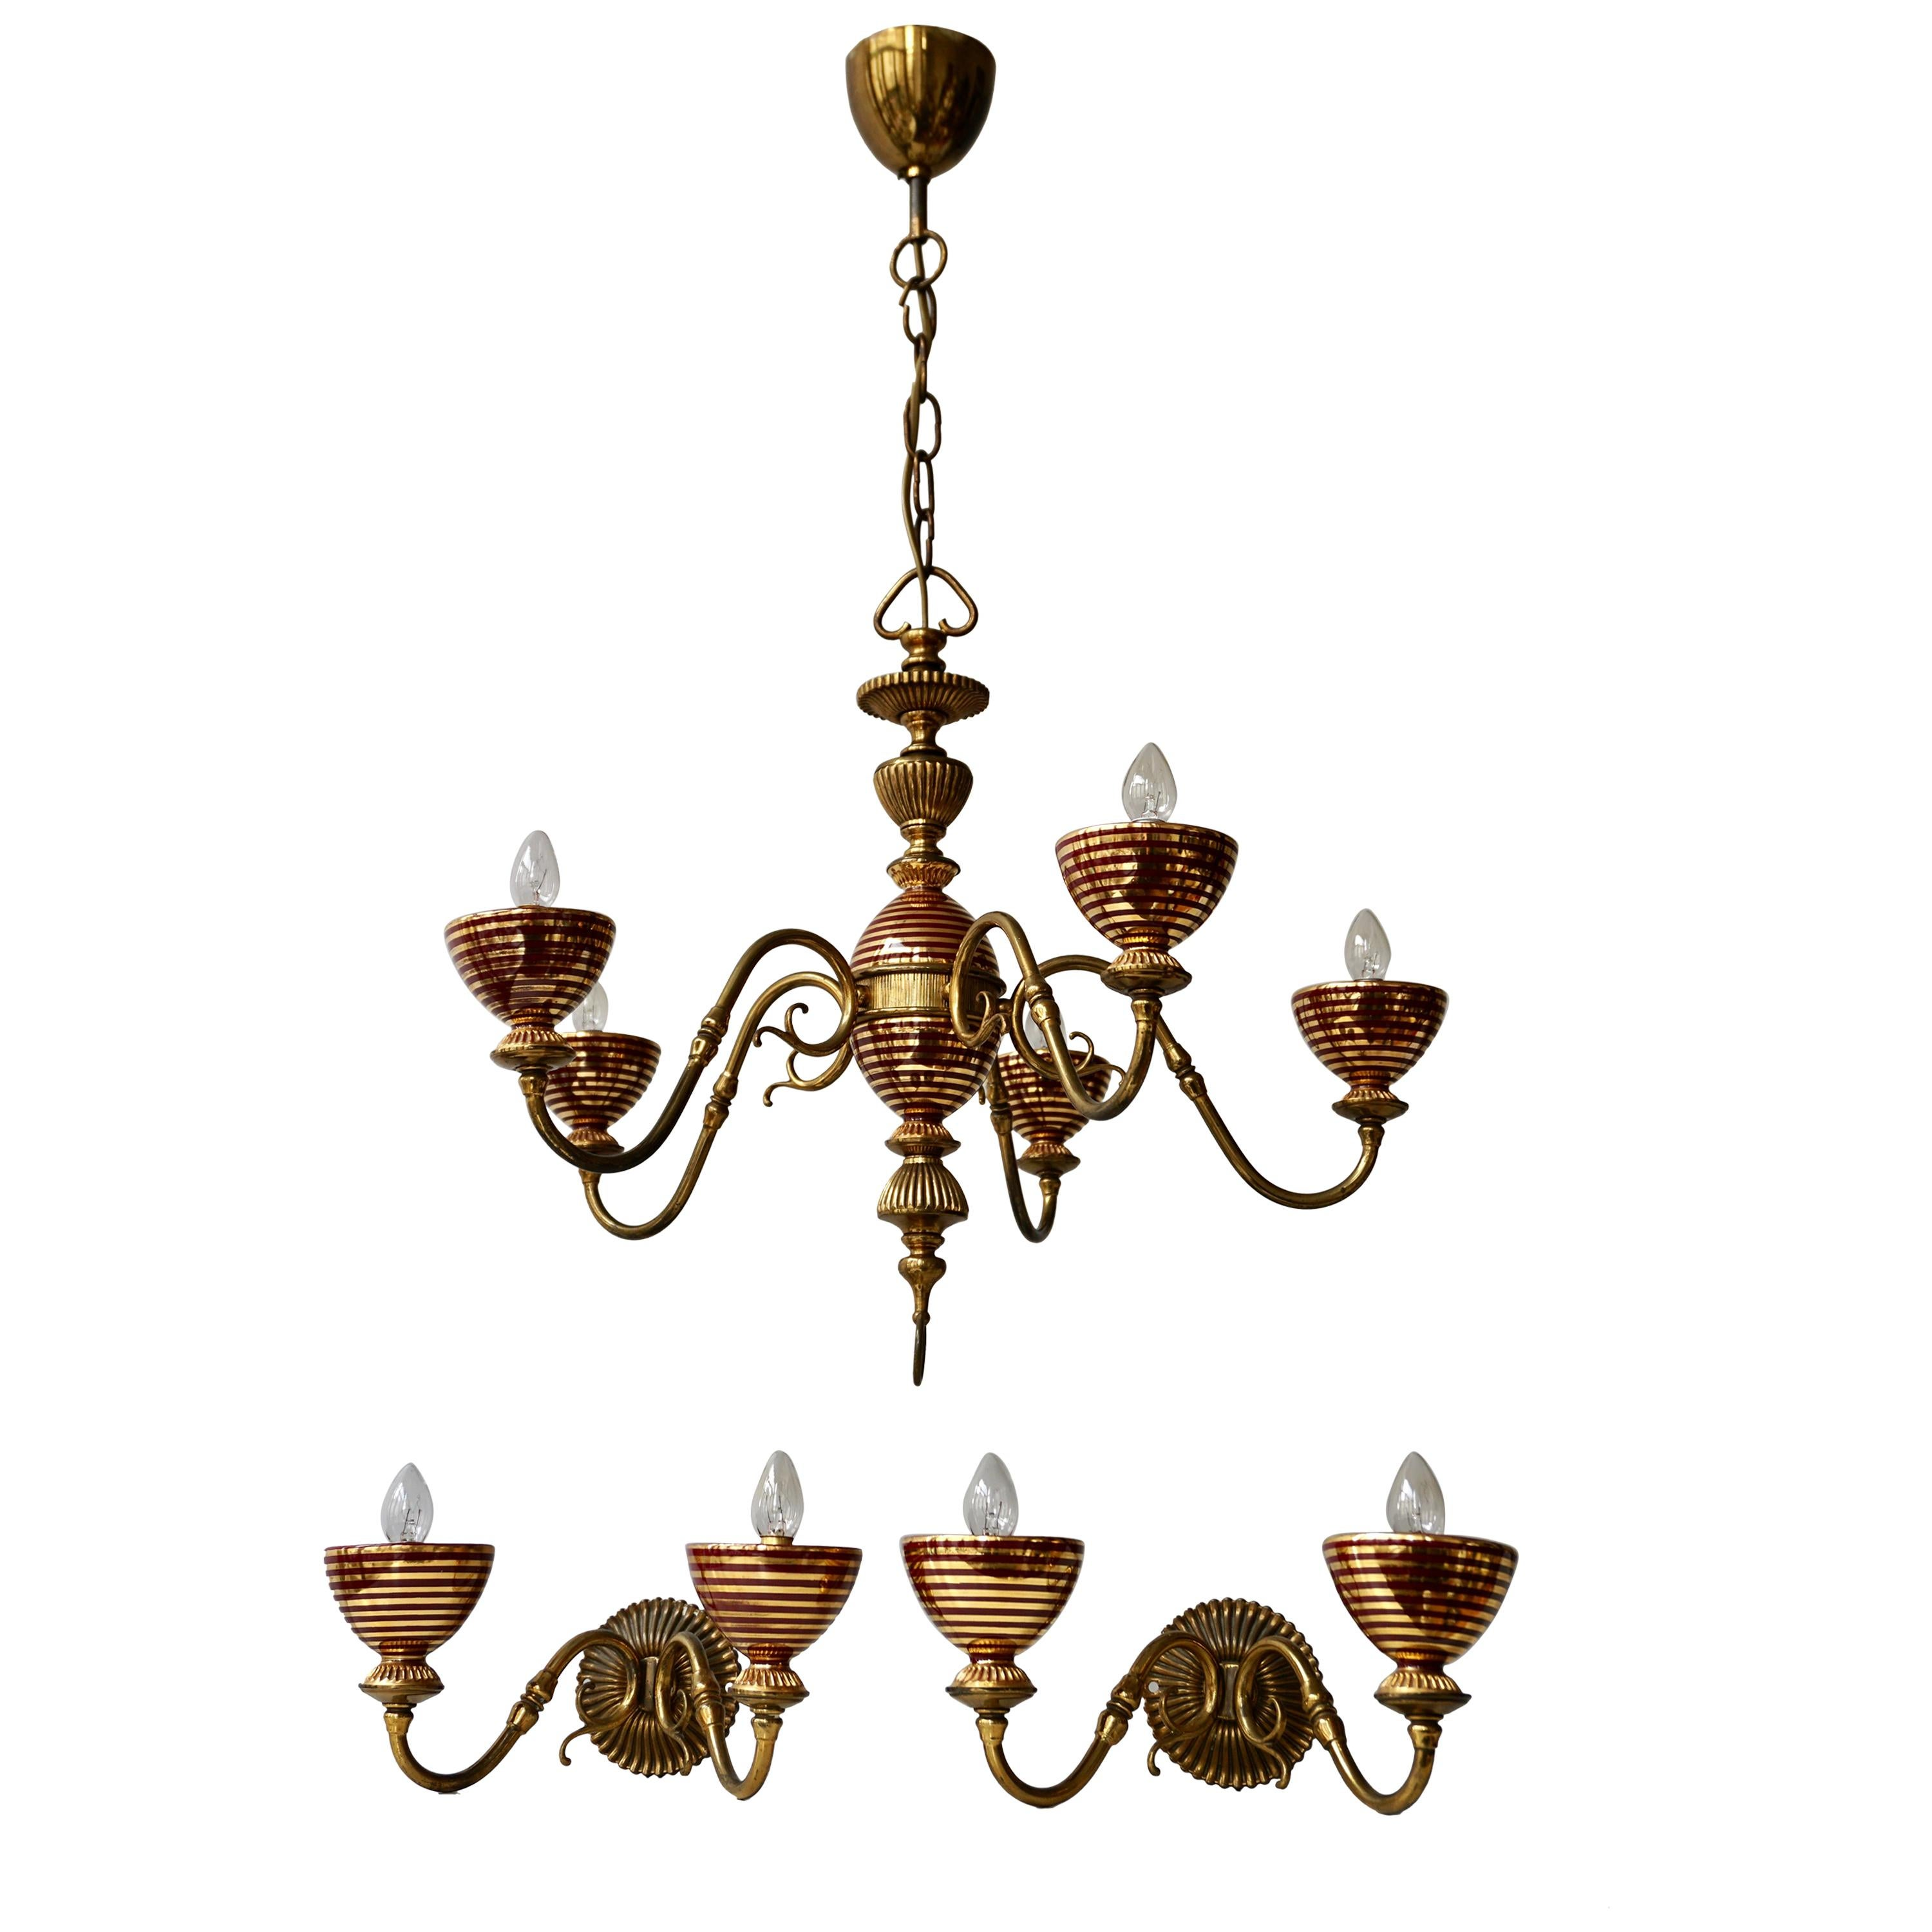 Murano Glass Chandelier with two Sconces